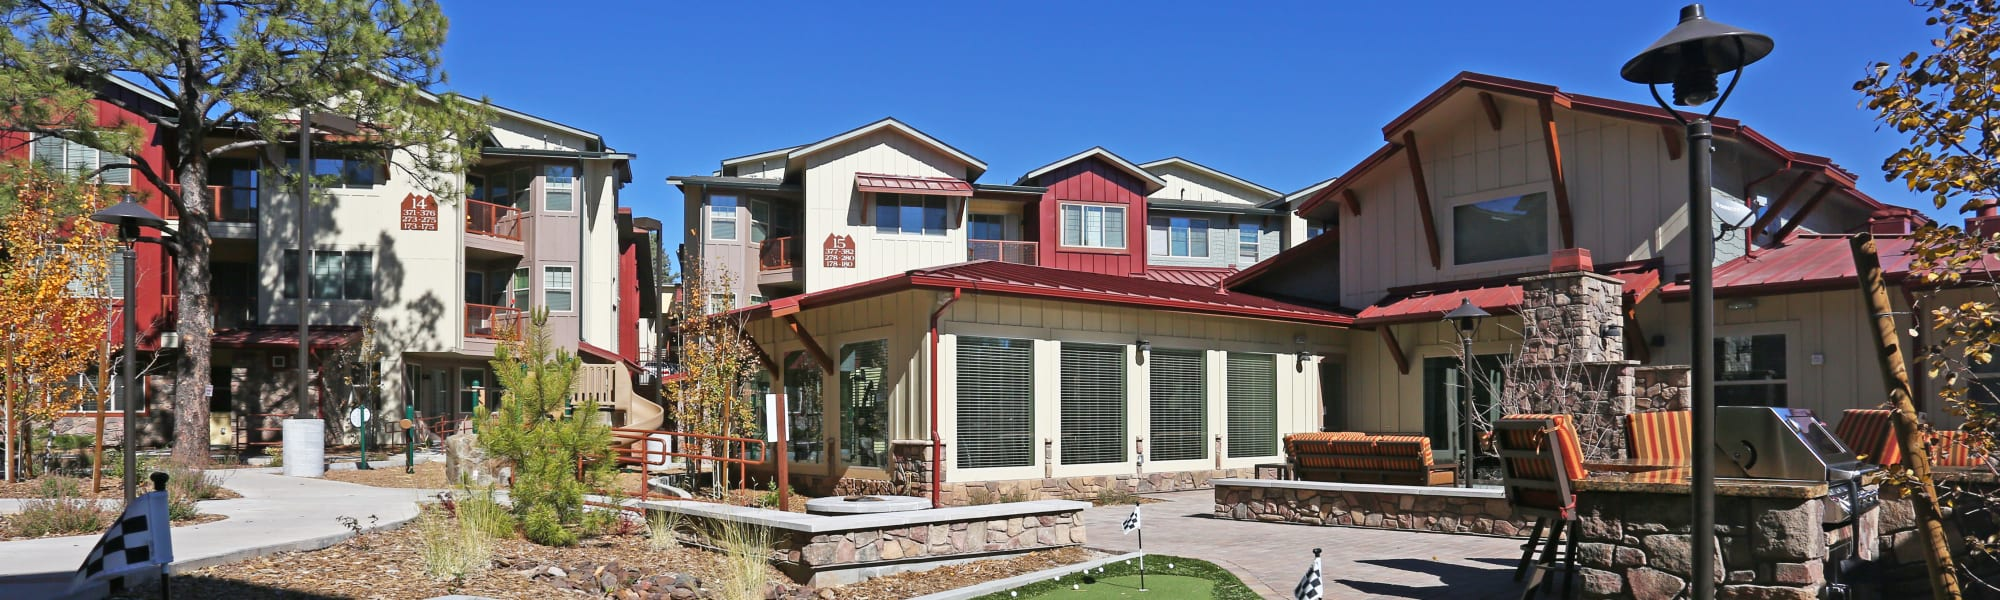 Apply to live at Mountain Trail in Flagstaff, Arizona